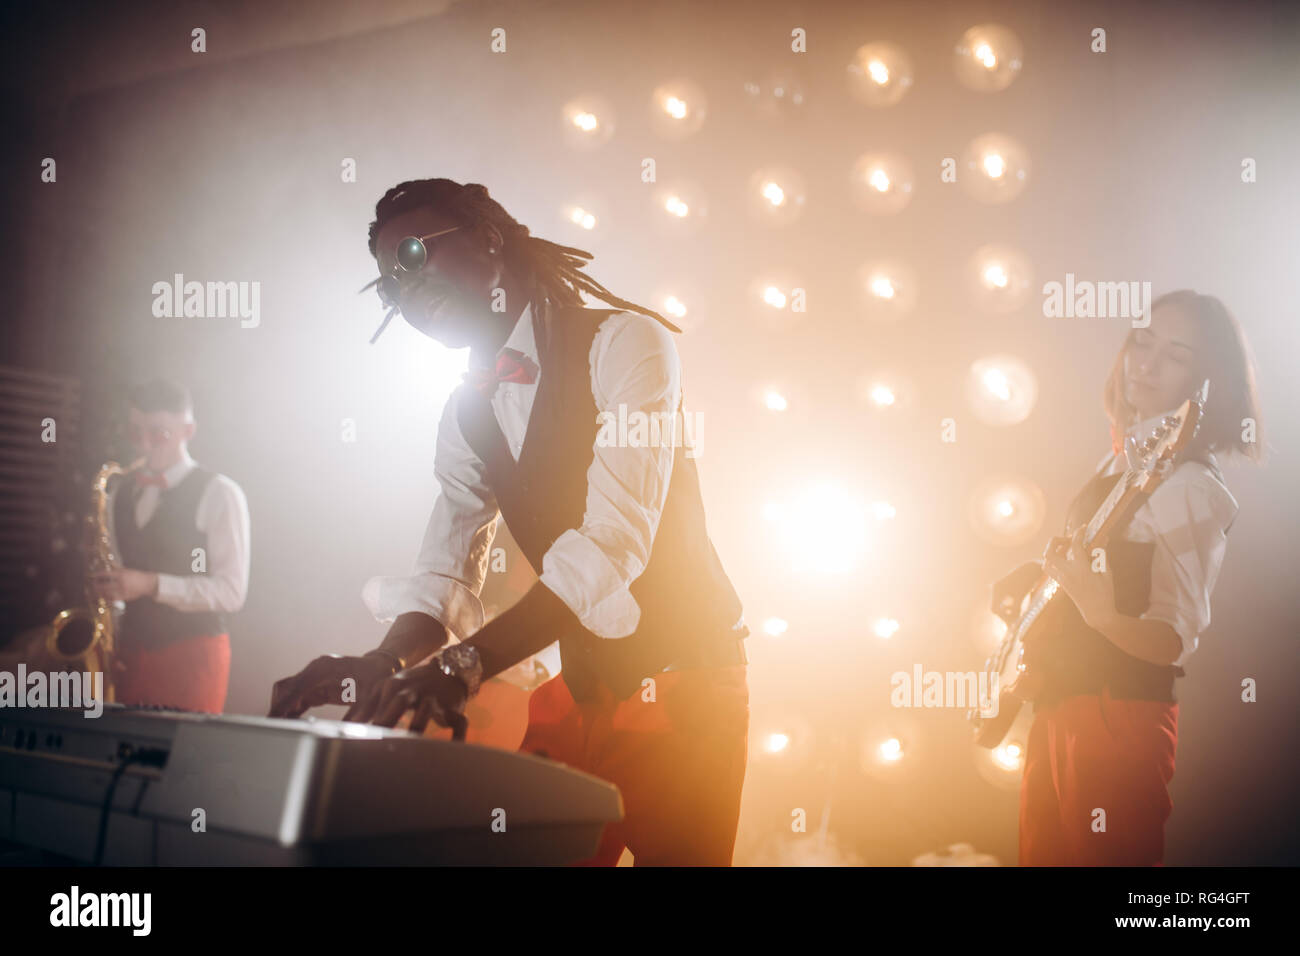 emotional playing on keyboard synthesizer piano and singing the song loudly - Stock Image